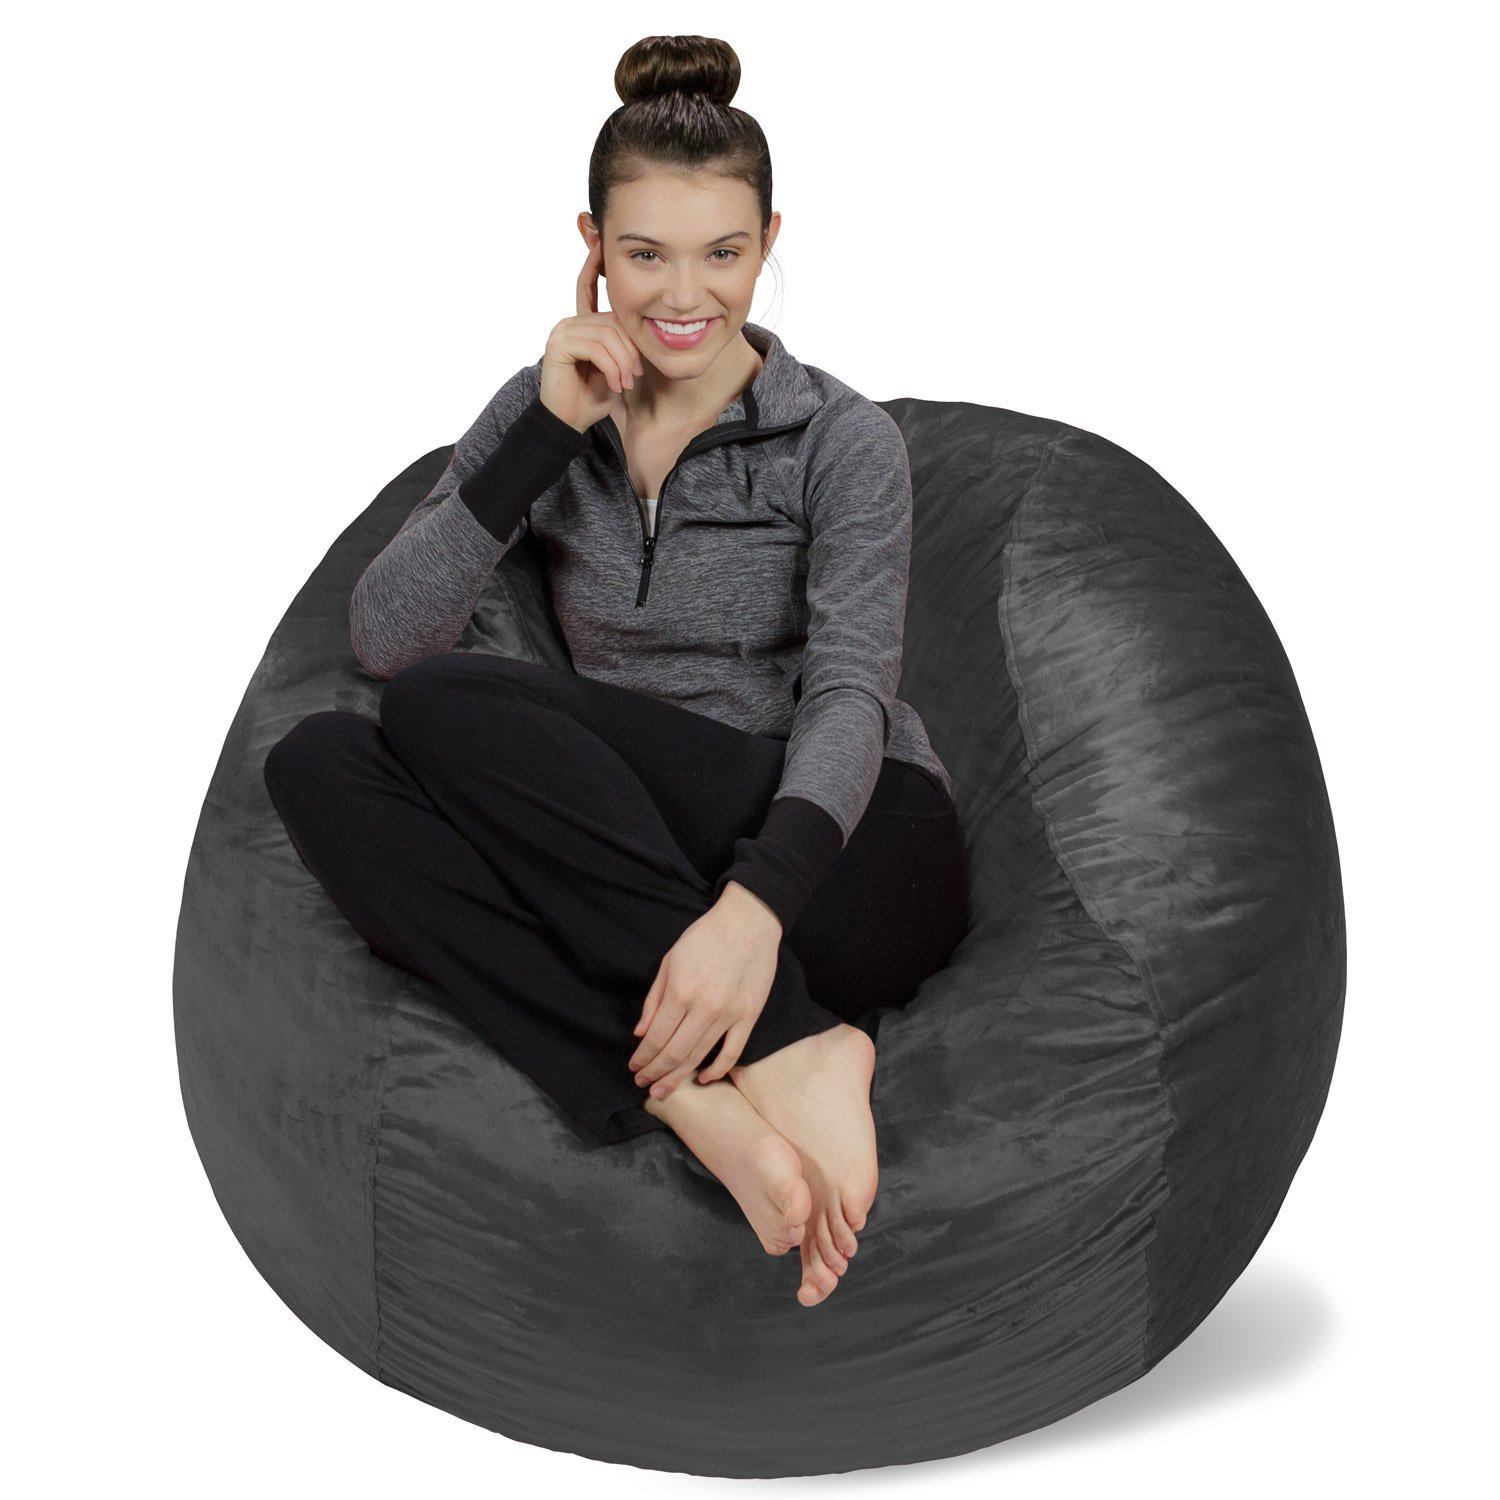 Amazon.com: Sofa Sack   Bean Bags Memory Foam Bean Bag Chair, 4 Feet,  Charcoal: Kitchen U0026 Dining